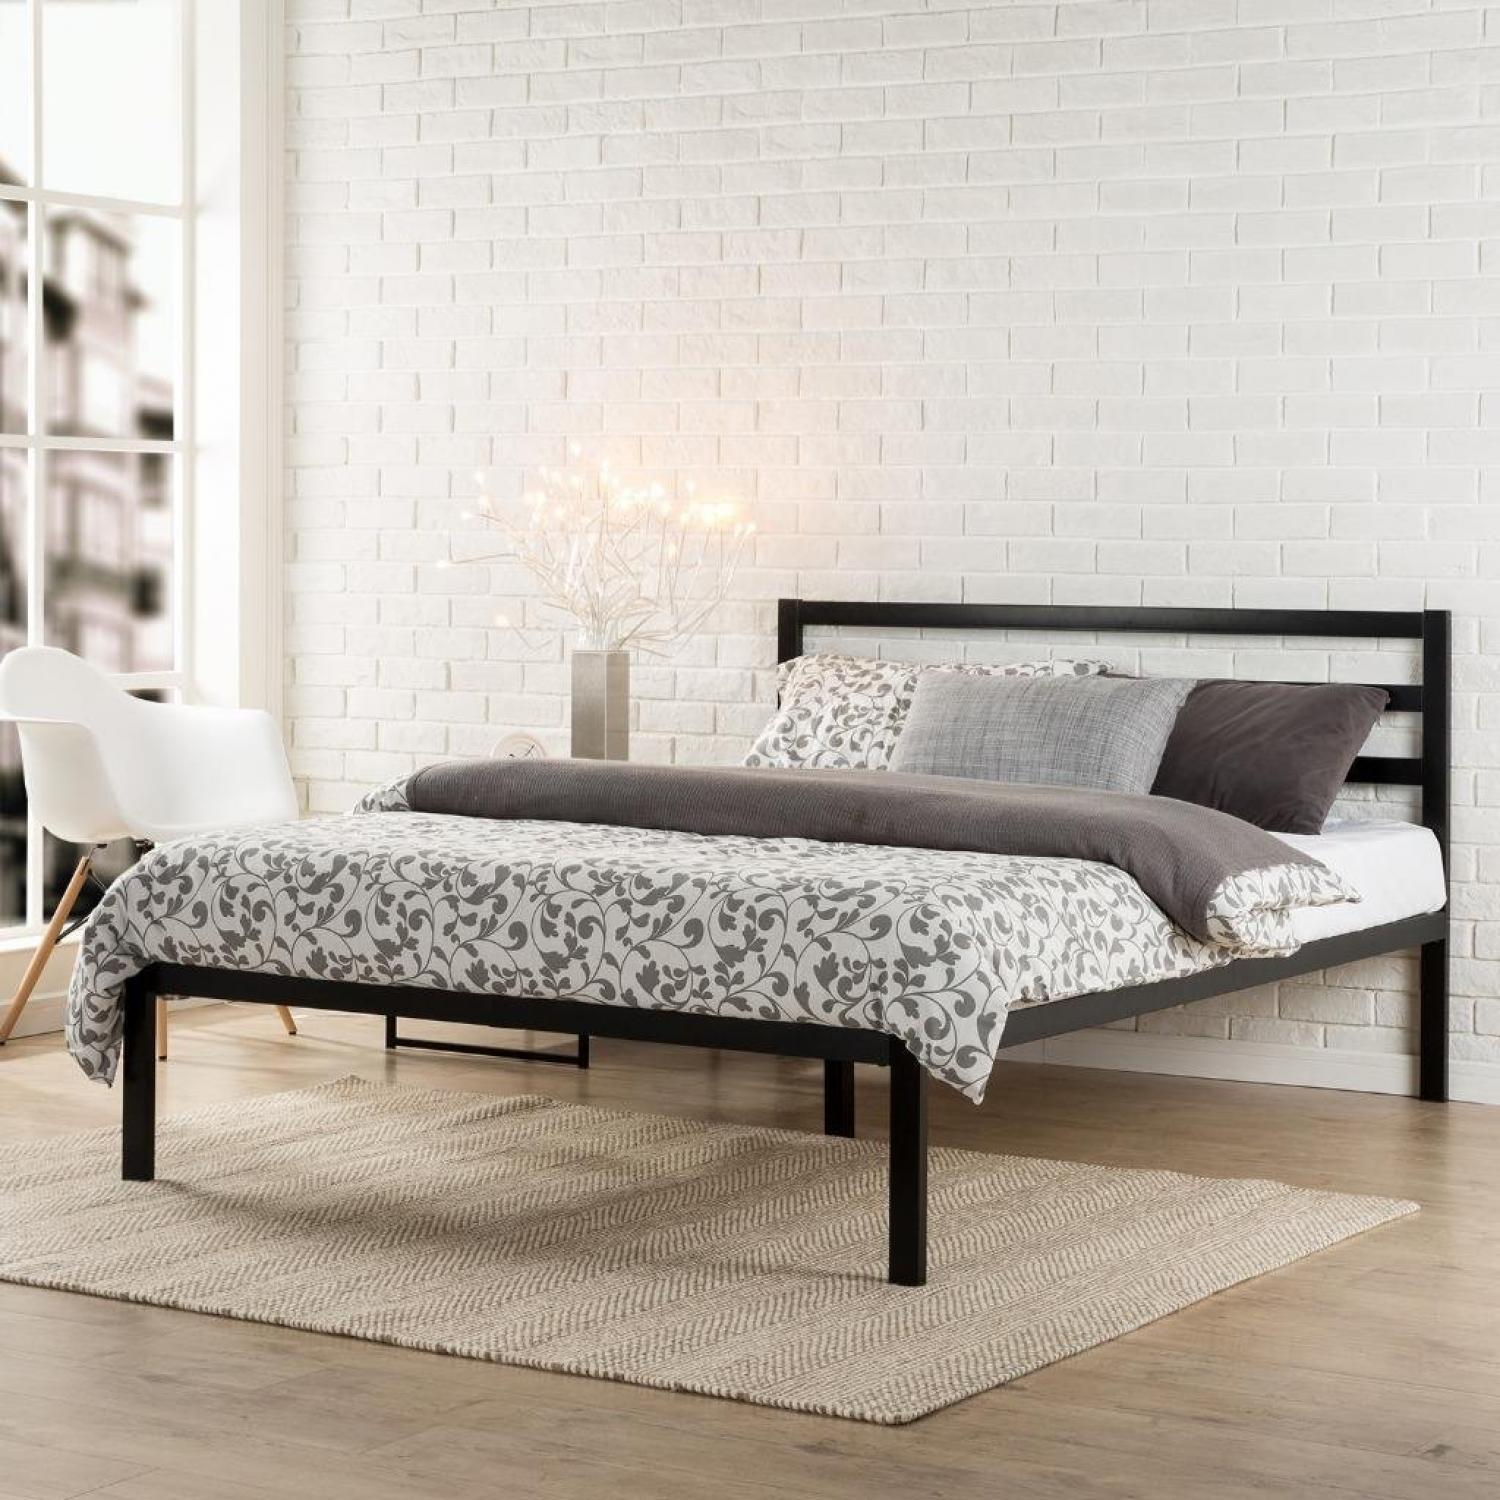 best king bed frame reviews guatemala times